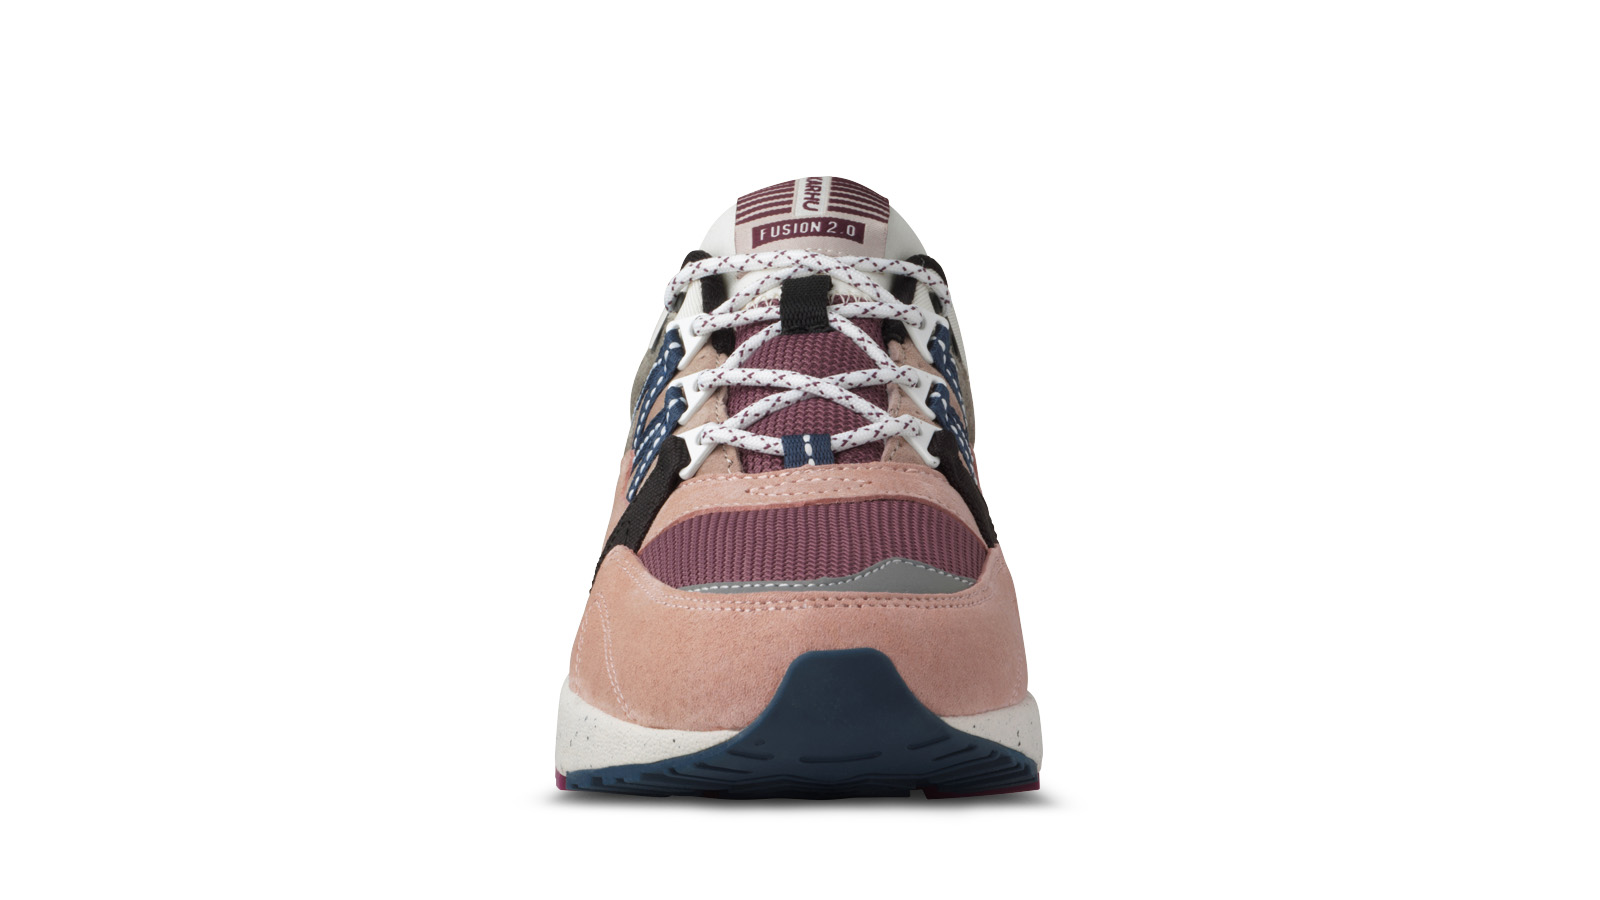 karhu-fusion-2-0-color-of-mood-misty-rose-reflecting-pond-femme-front